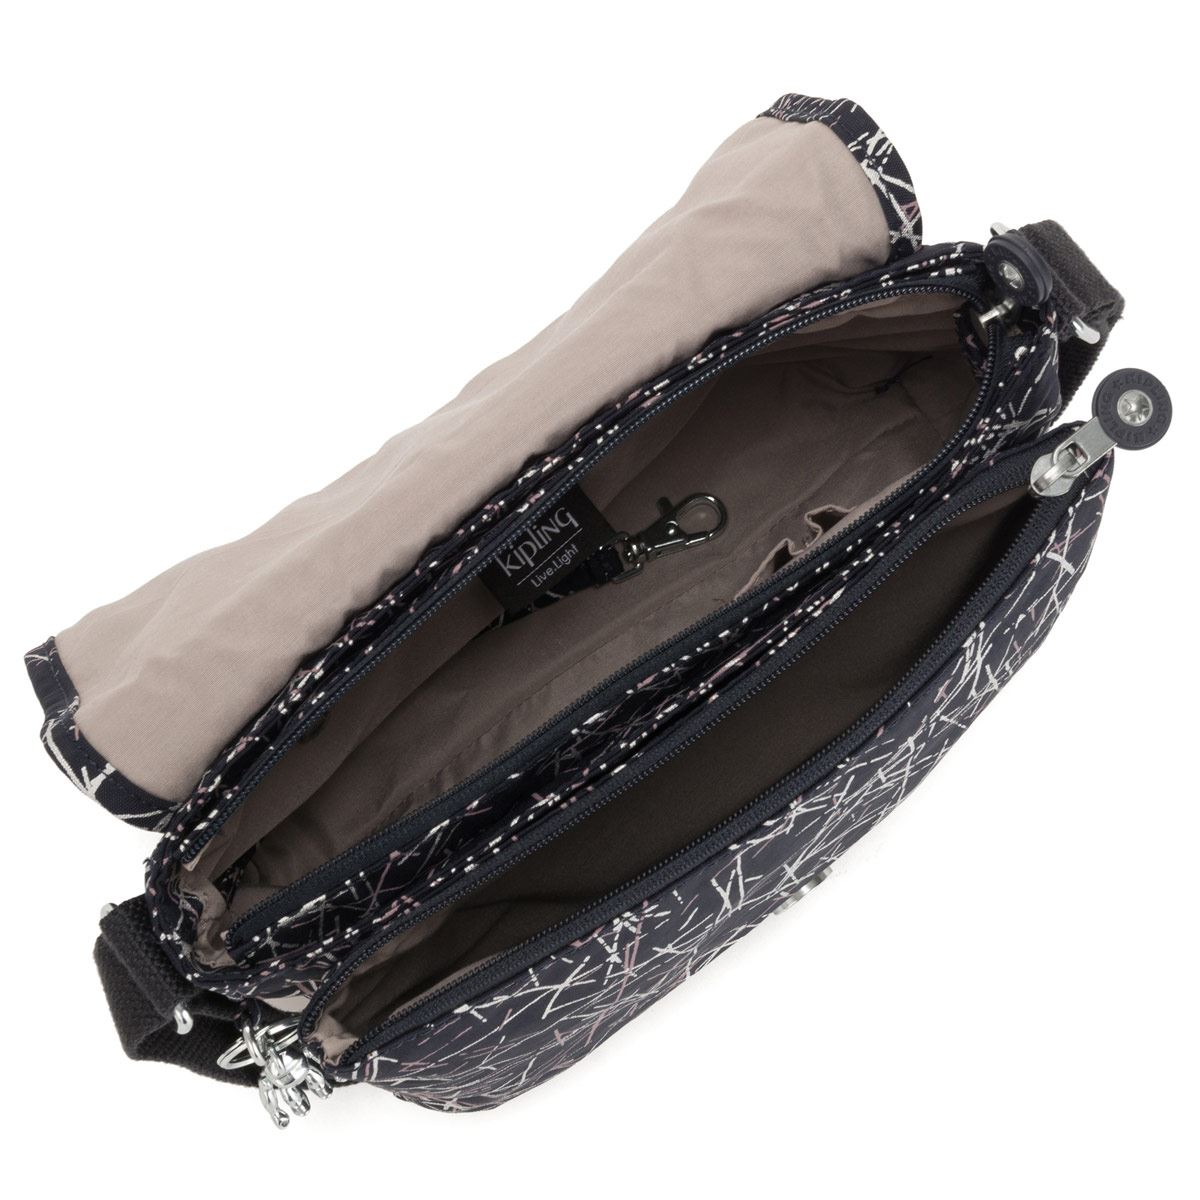 Bolso cross body Kipling negro